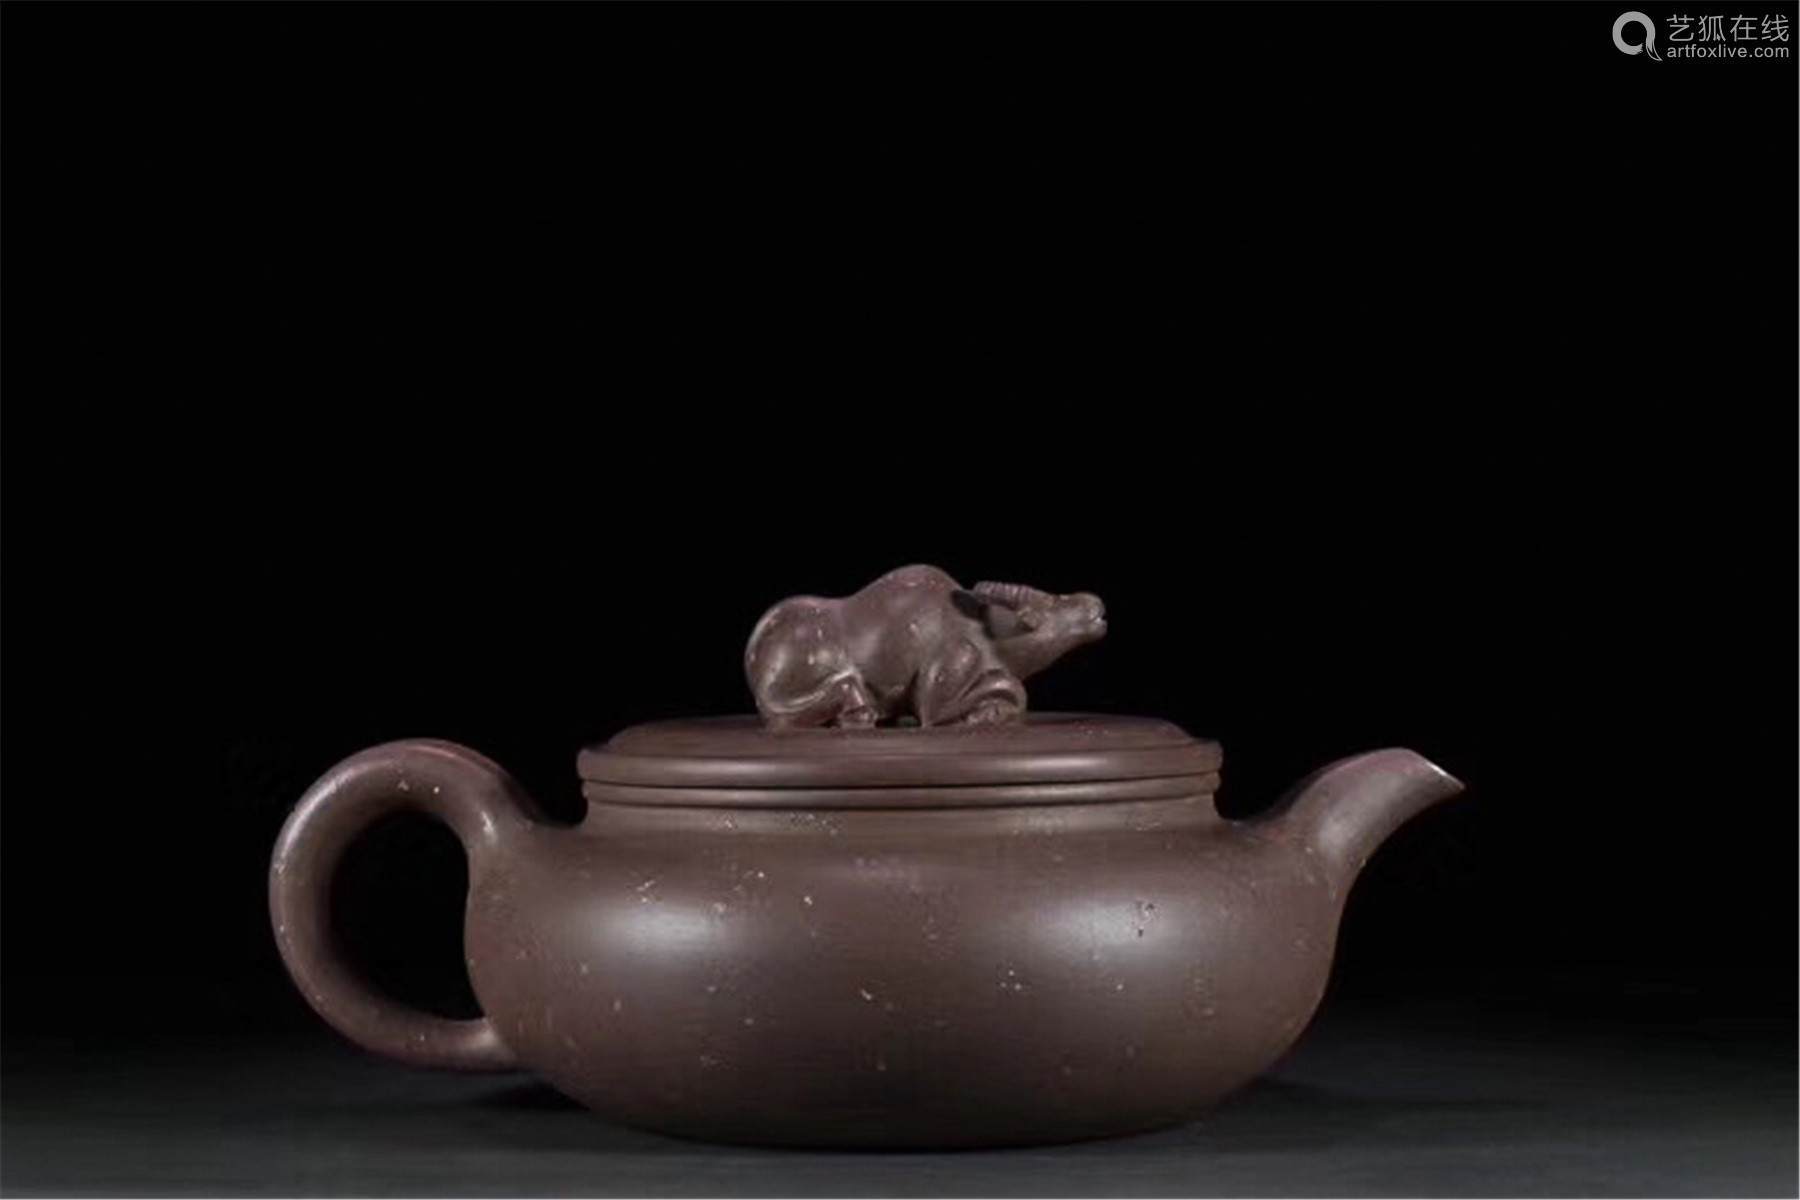 A COW DESIGN FLAT COVER TEAPOT